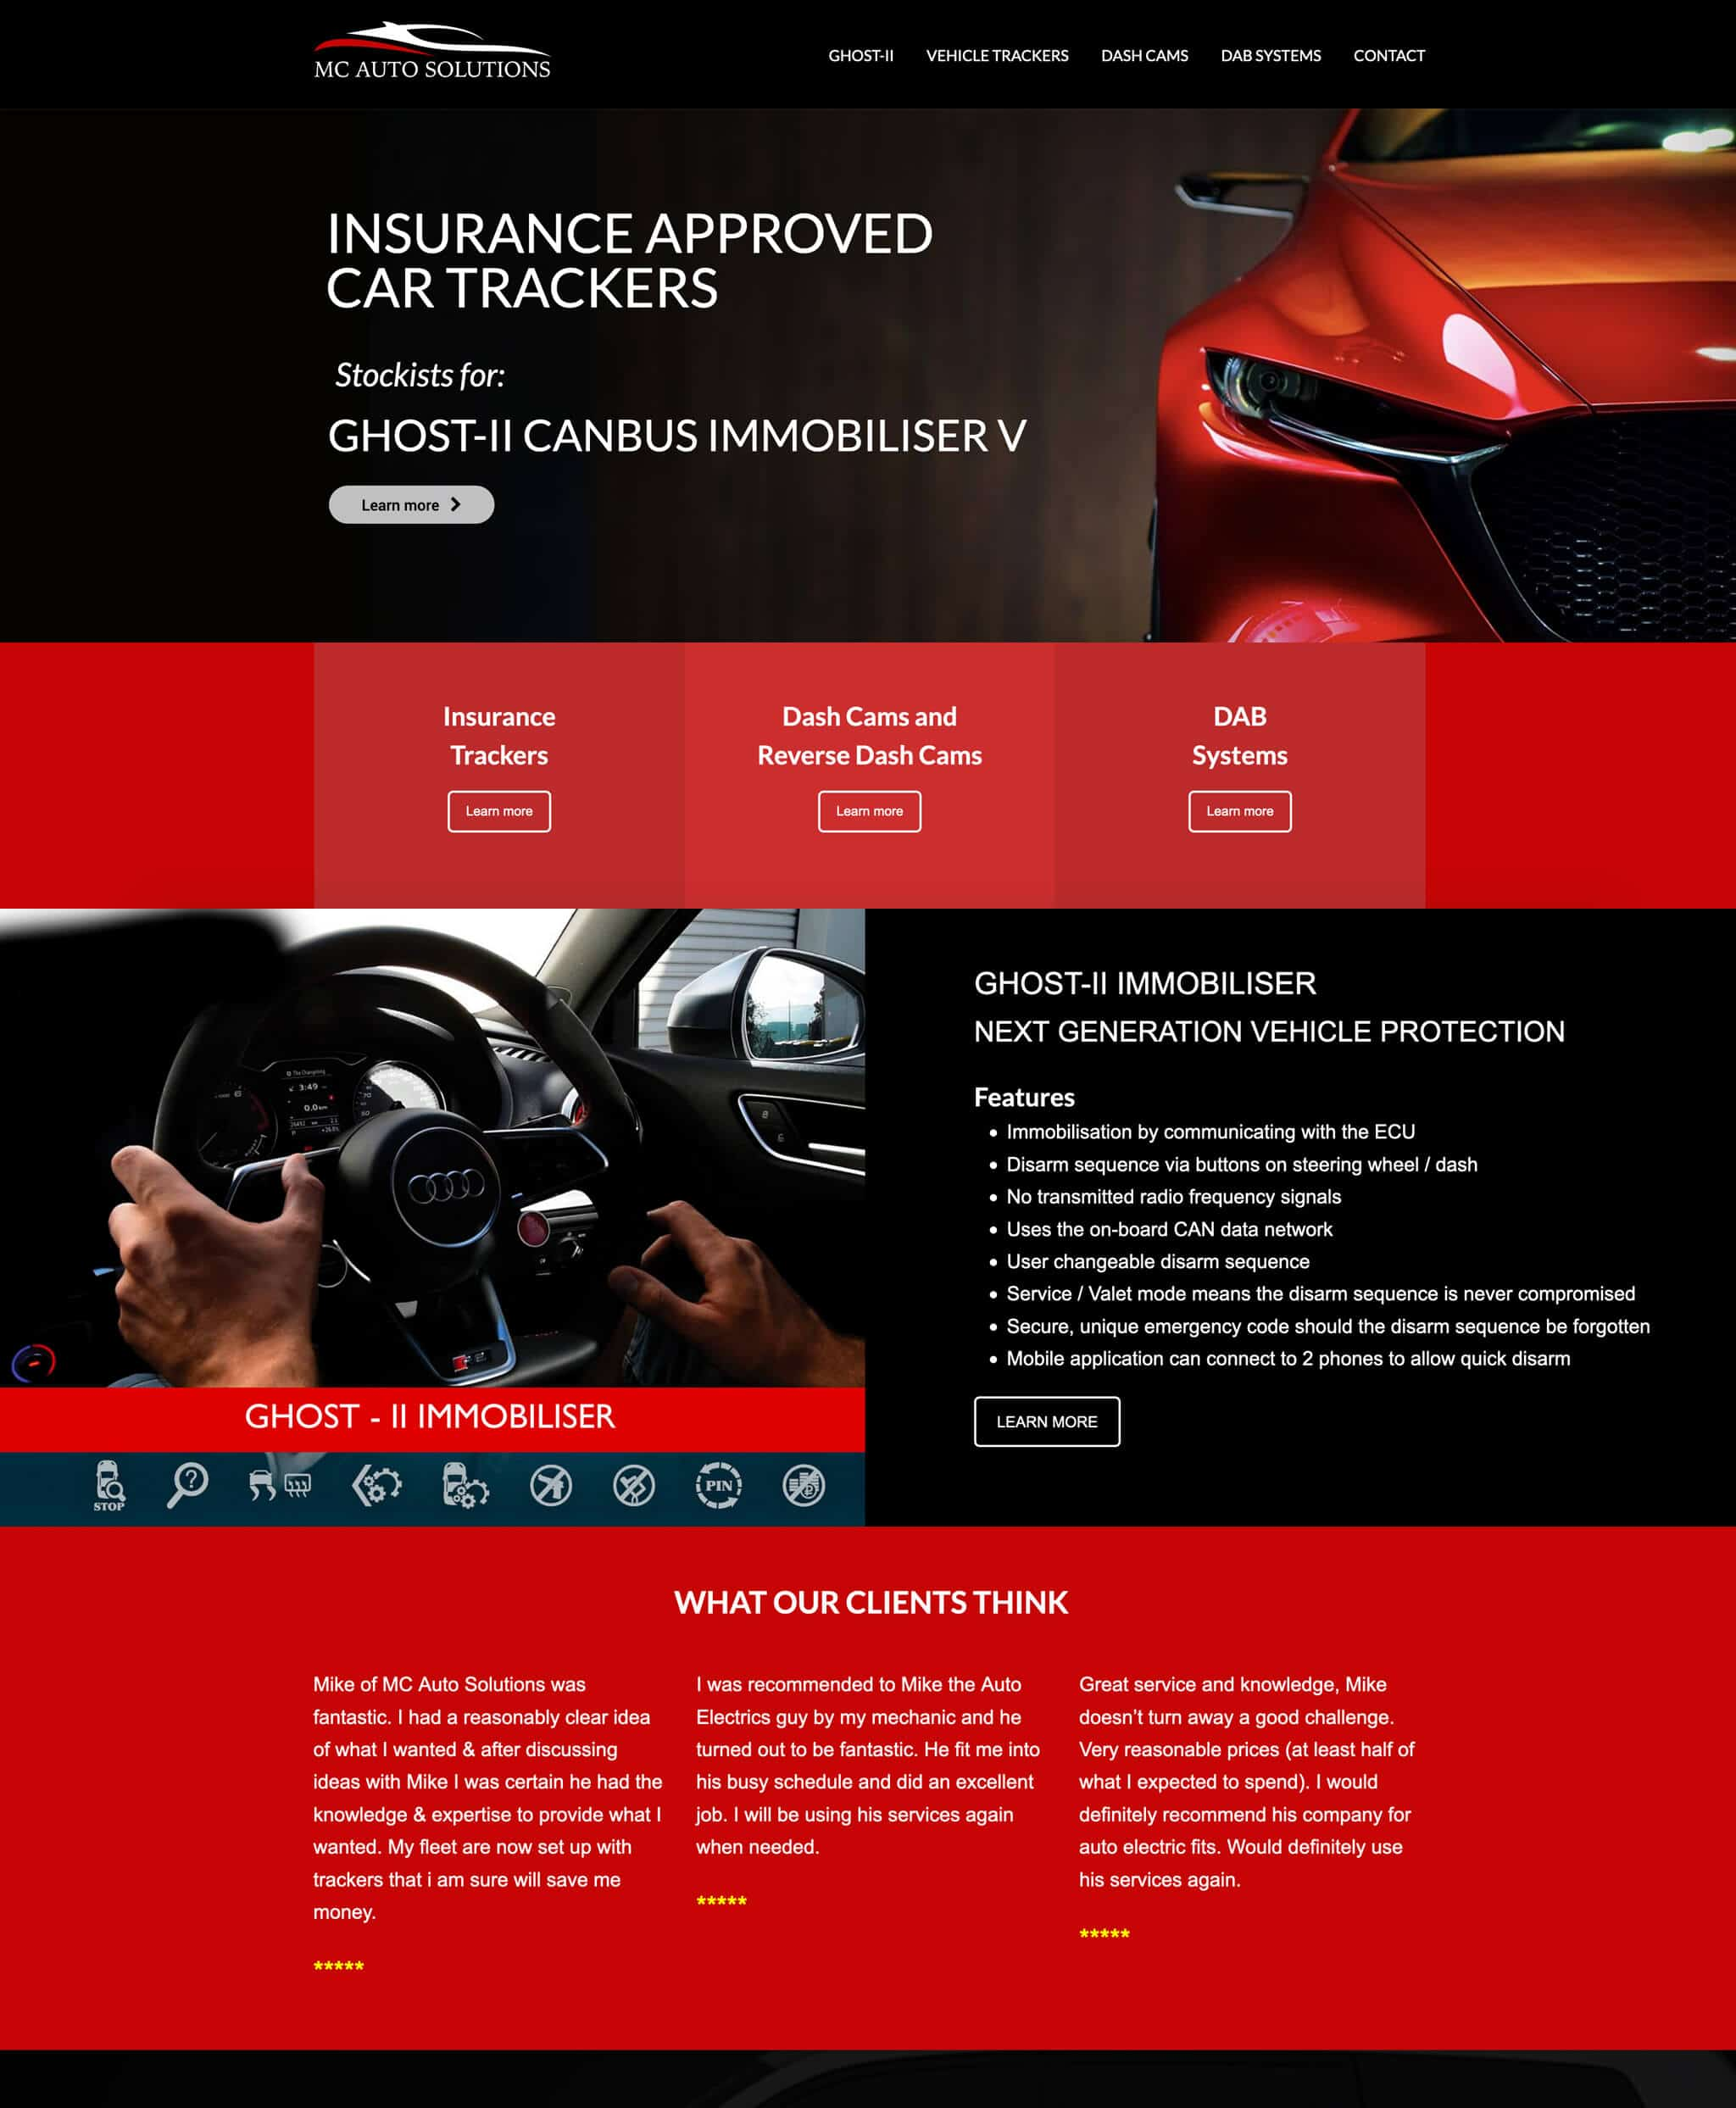 black and red website design for an insurance car tracker